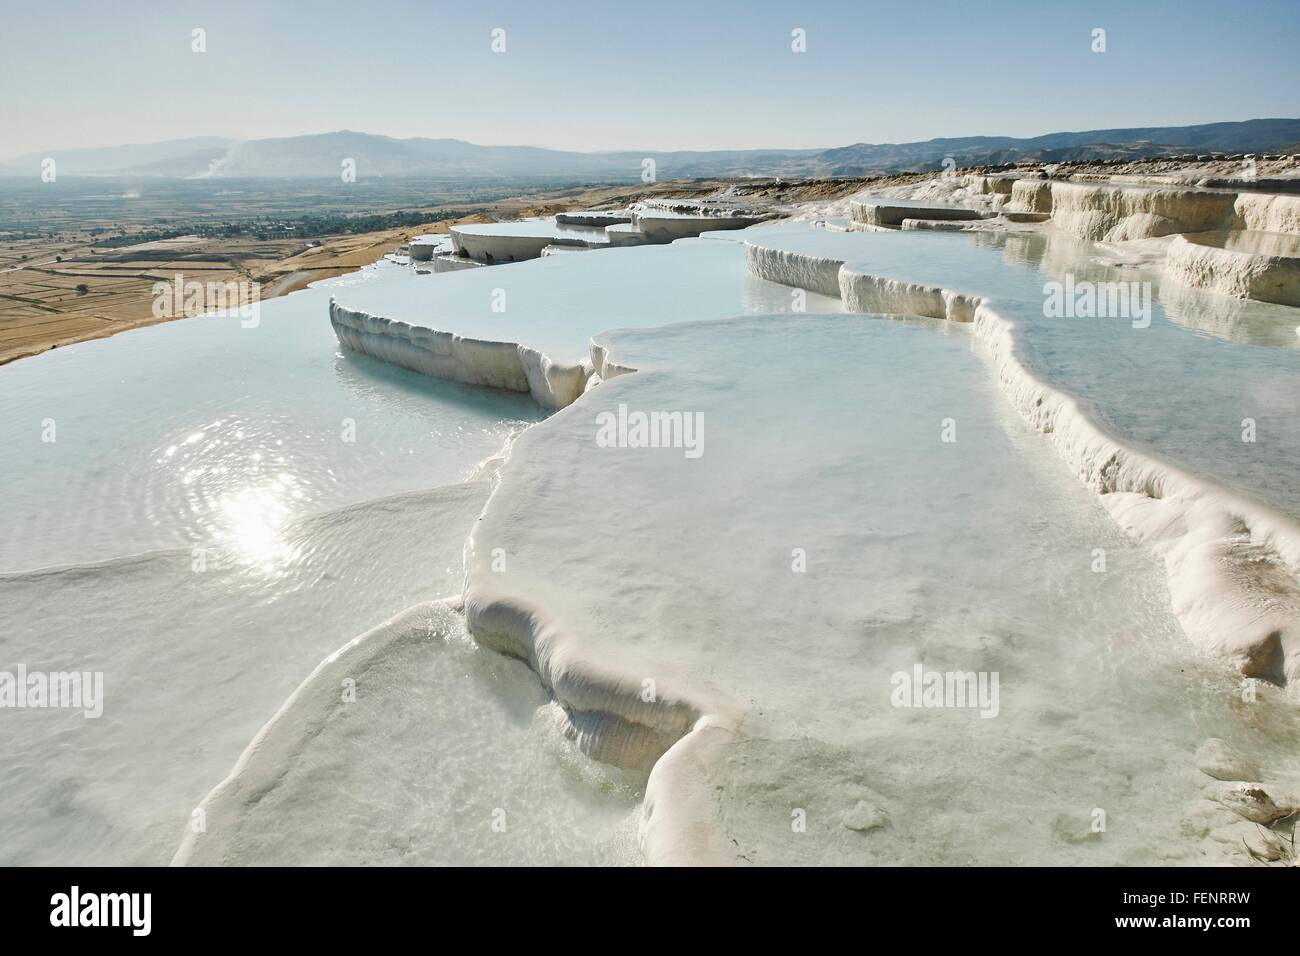 White hot spring terraces, Pamukkale, Anatolia, Turkey - Stock Image